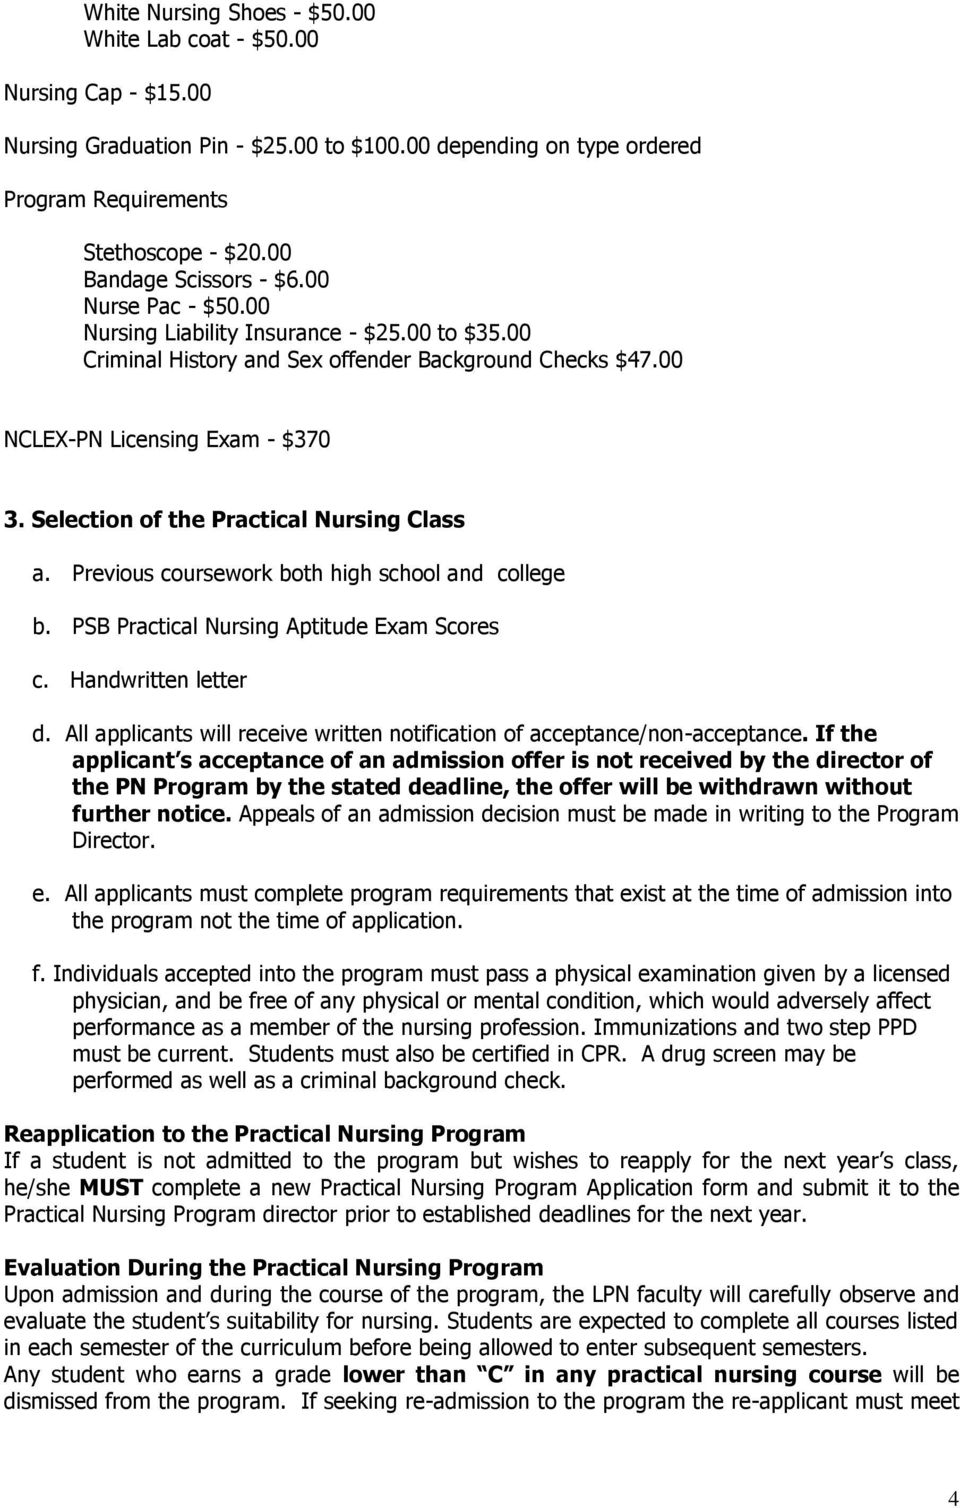 Selection of the Practical Nursing Class a. Previous coursework both high school and college b. PSB Practical Nursing Aptitude Exam Scores c. Handwritten letter d.